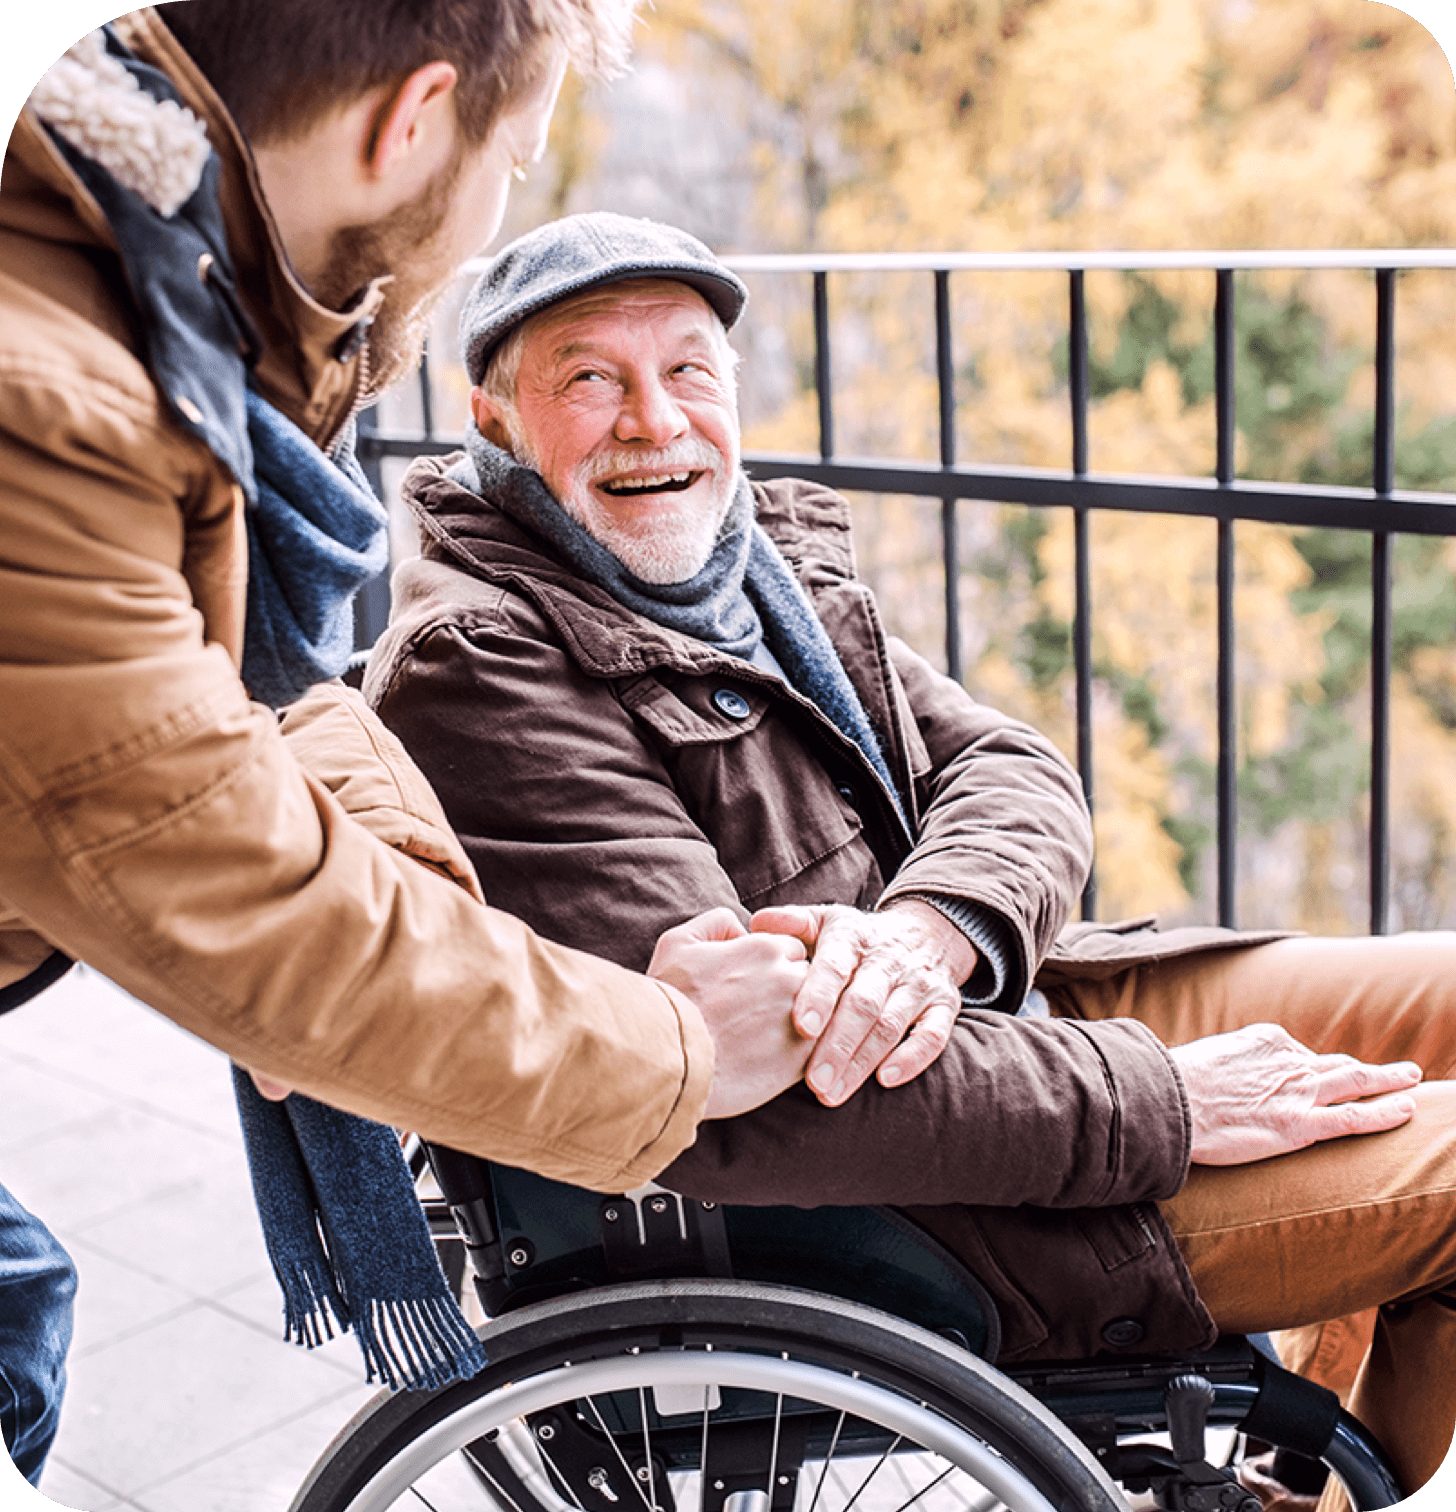 Young man helping elderly man in long term care